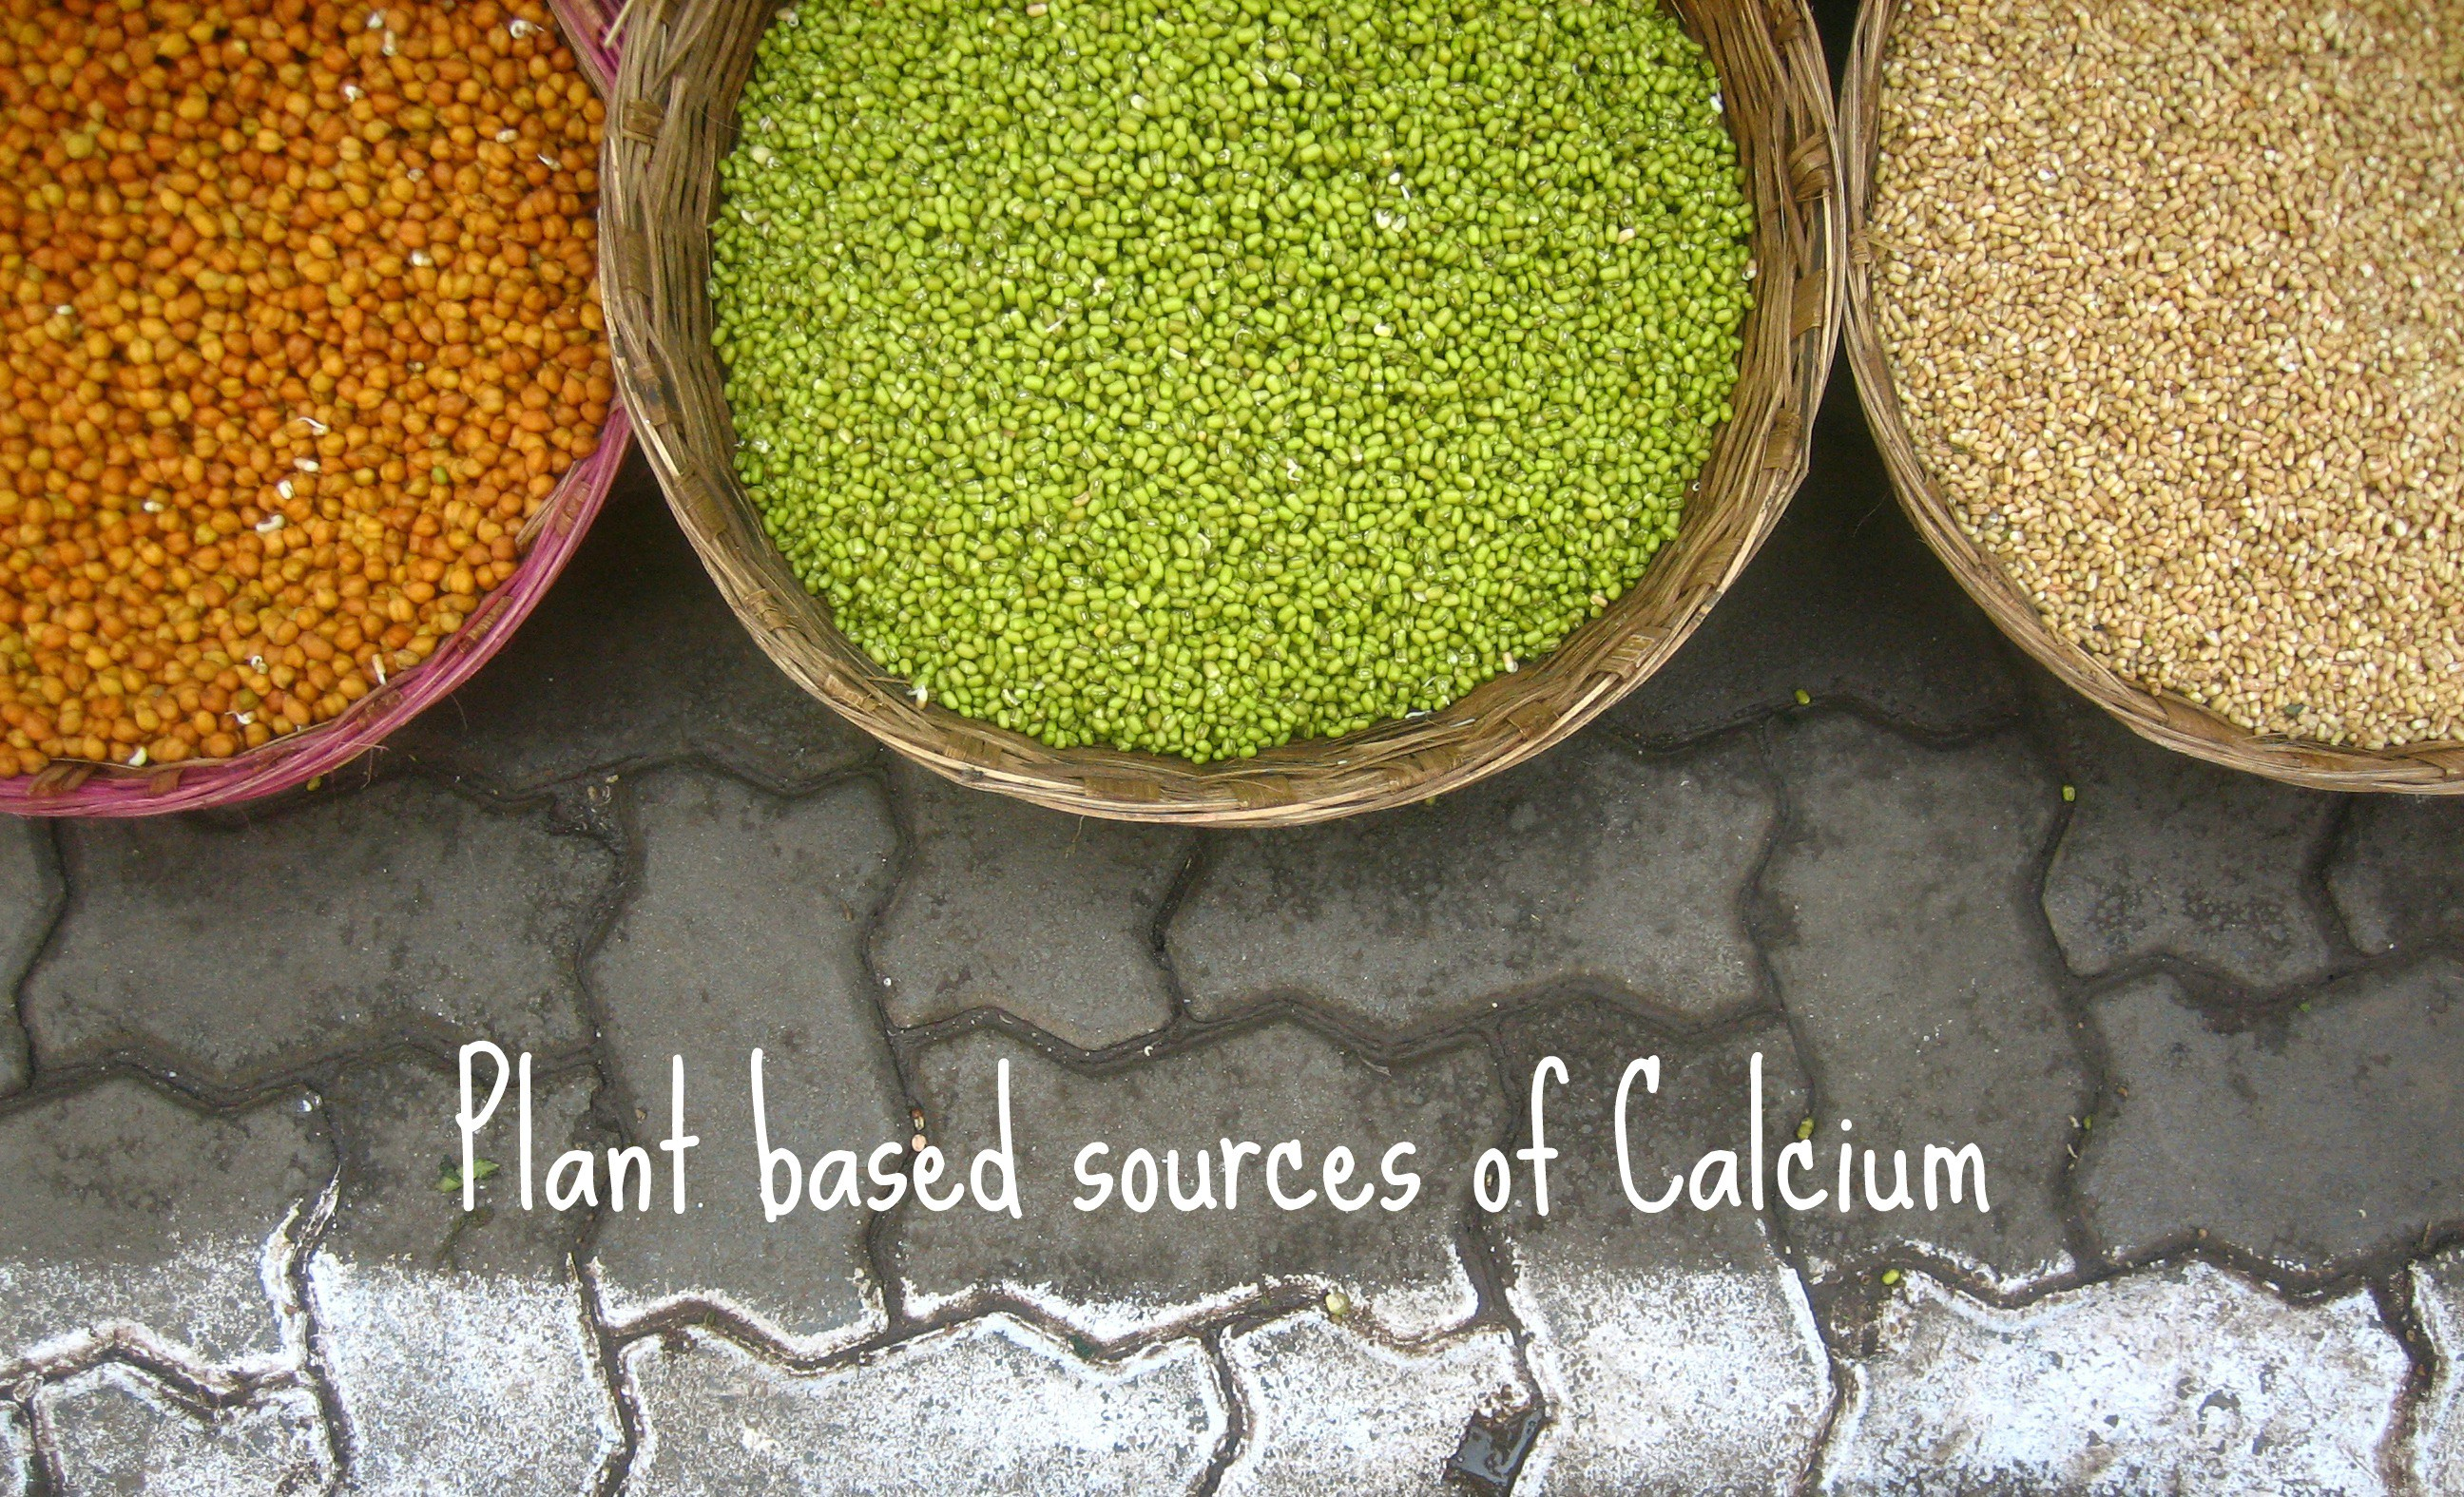 Plant Based Sources Of Calcium